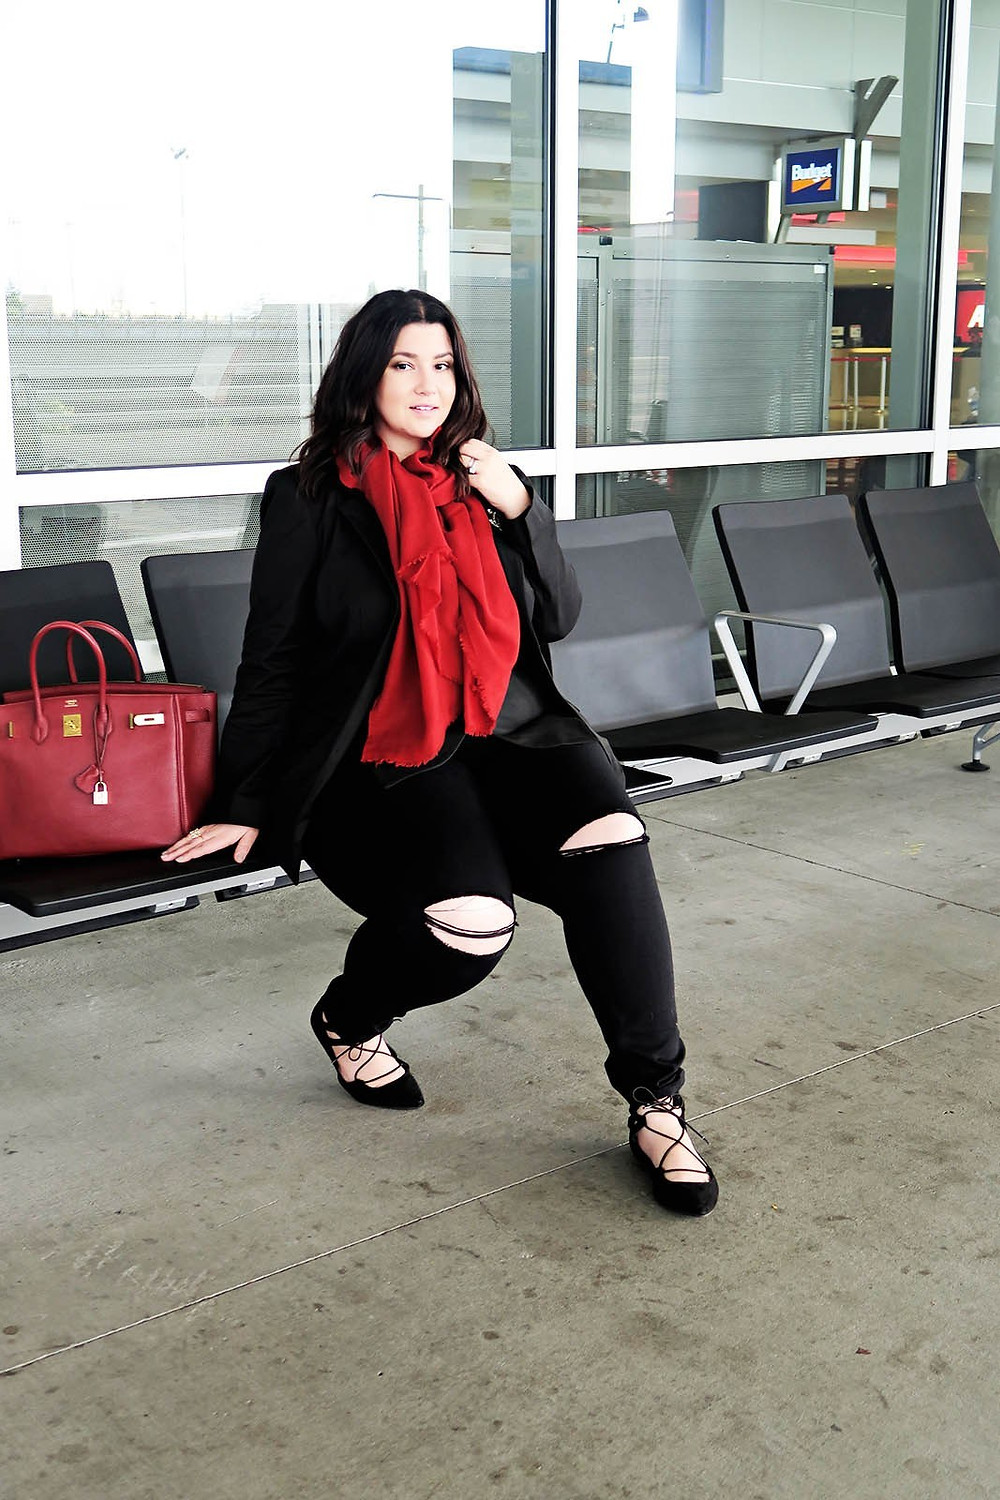 plus size travel ootd universal standard crystal coons phoenix az seattle travel planes airport chic